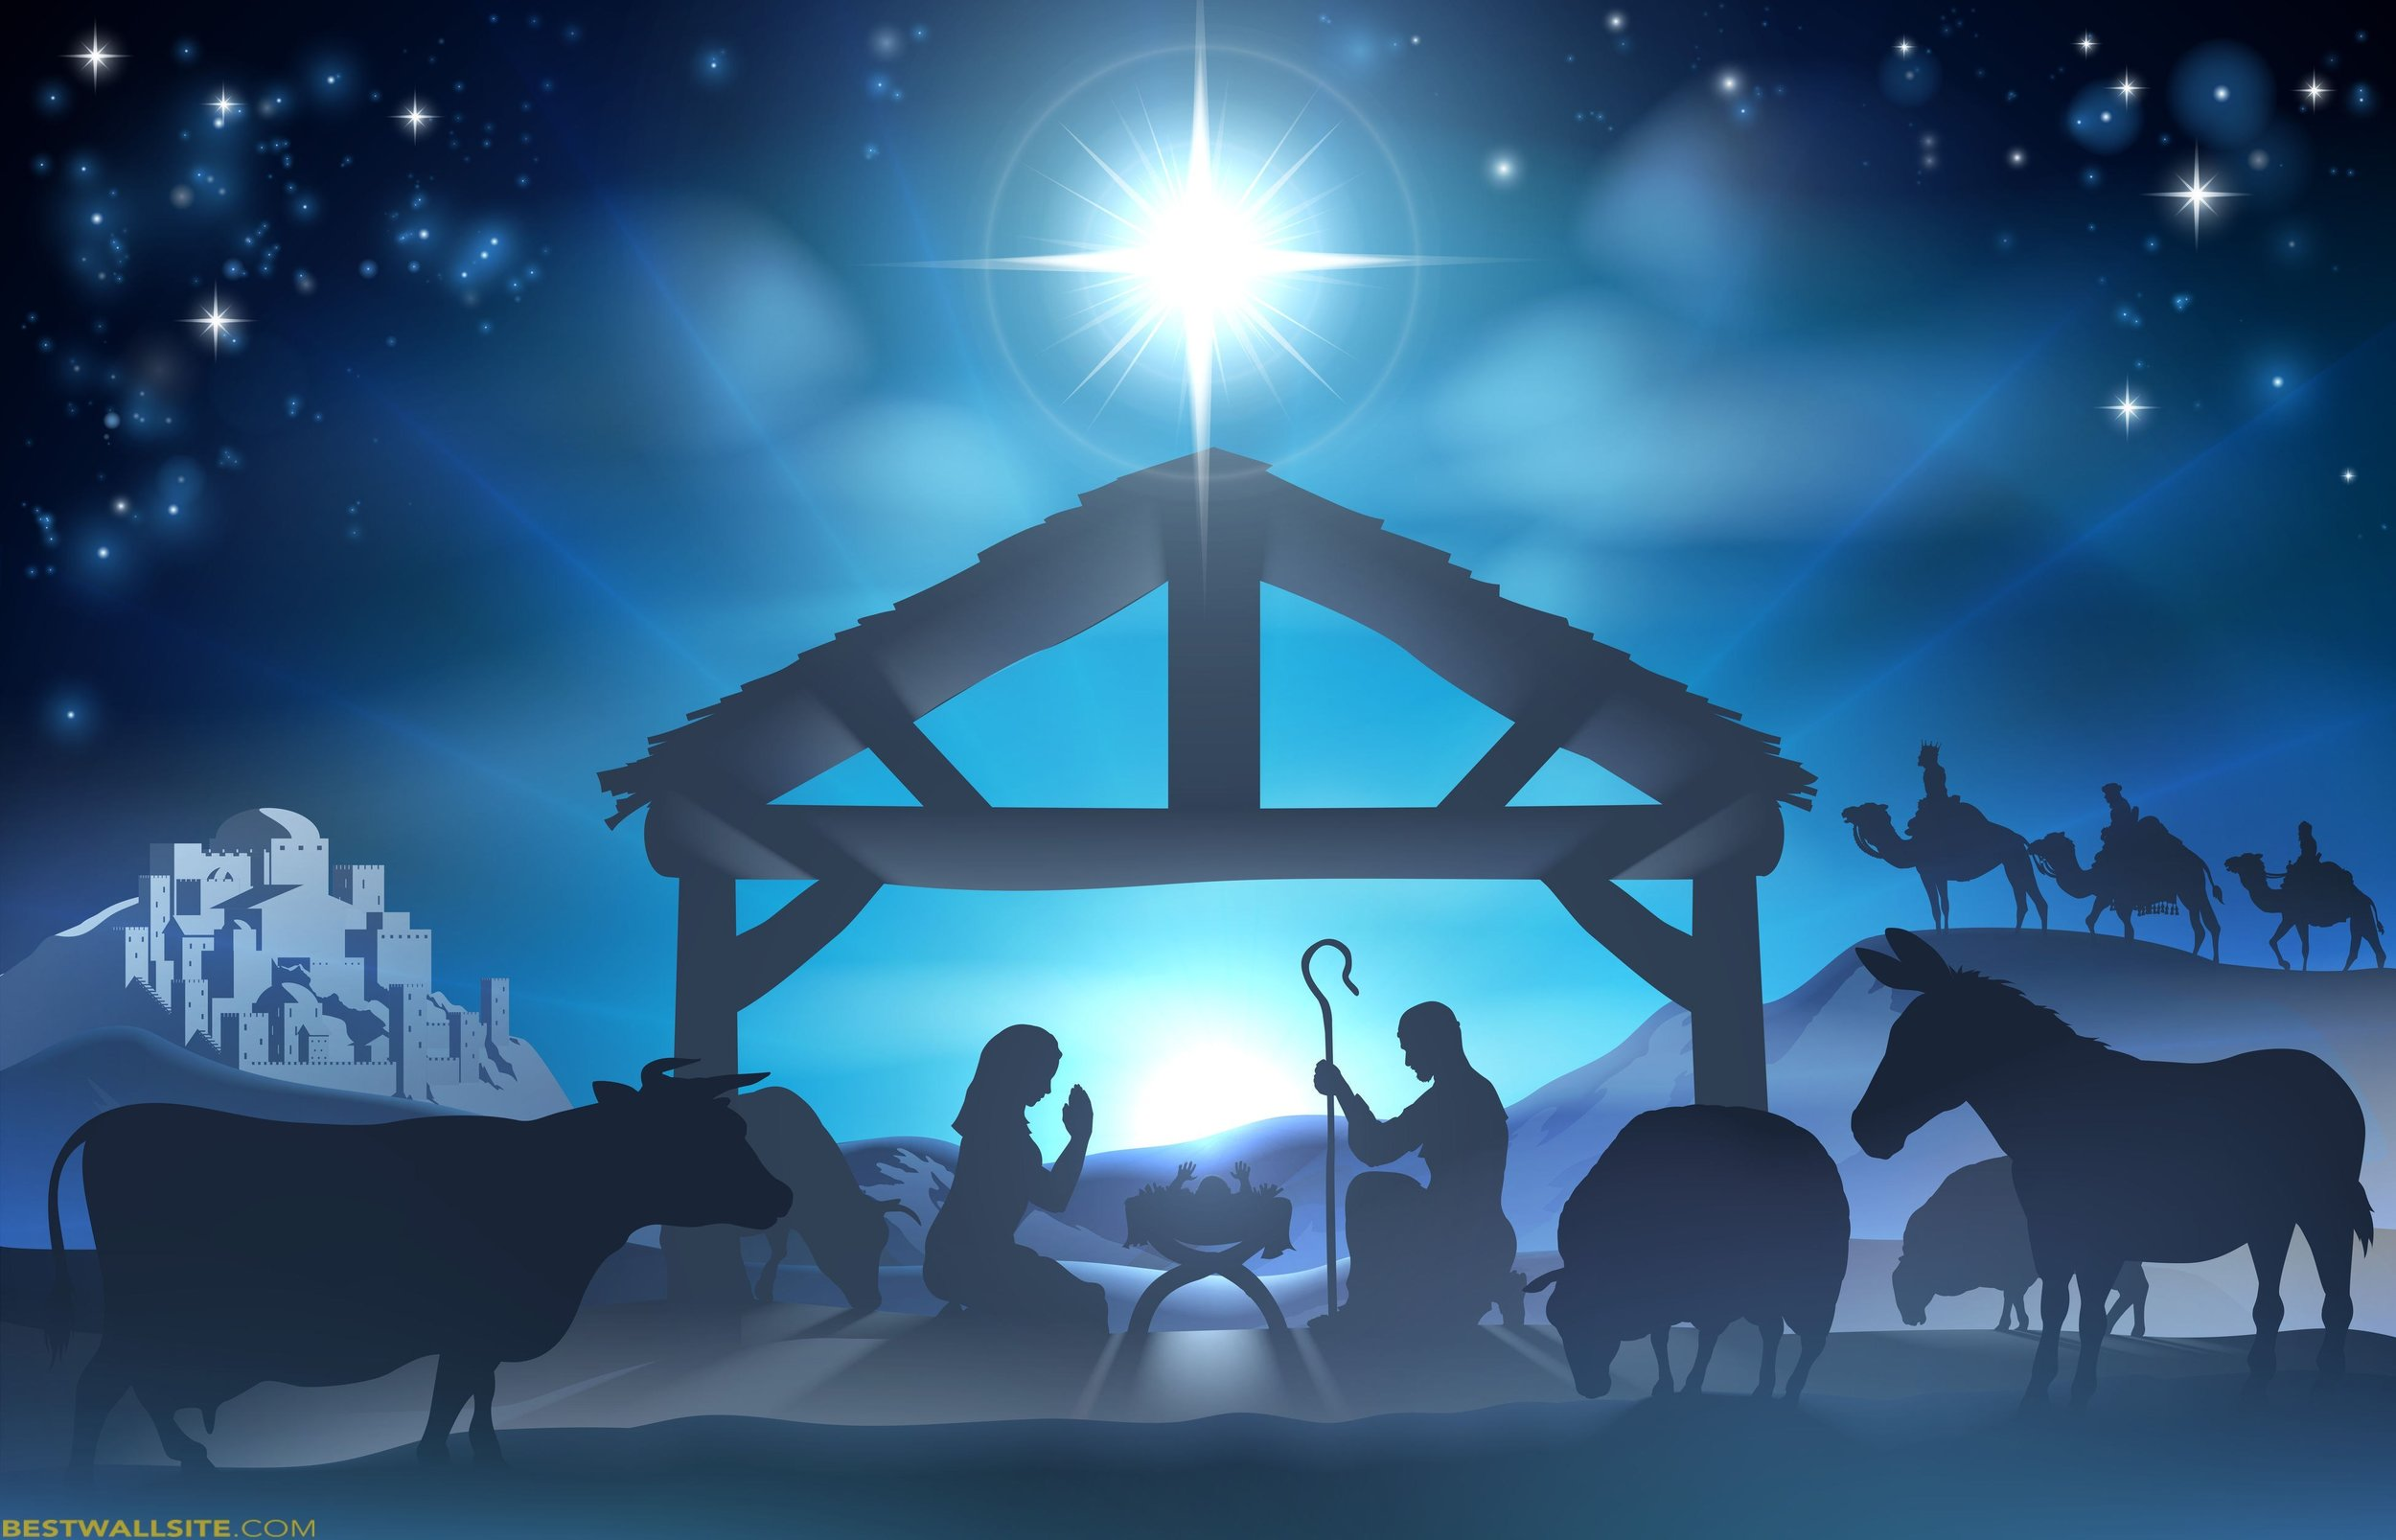 Advent-Christmas-Time-Nativity-Scene-Wallpaper-HD.jpg